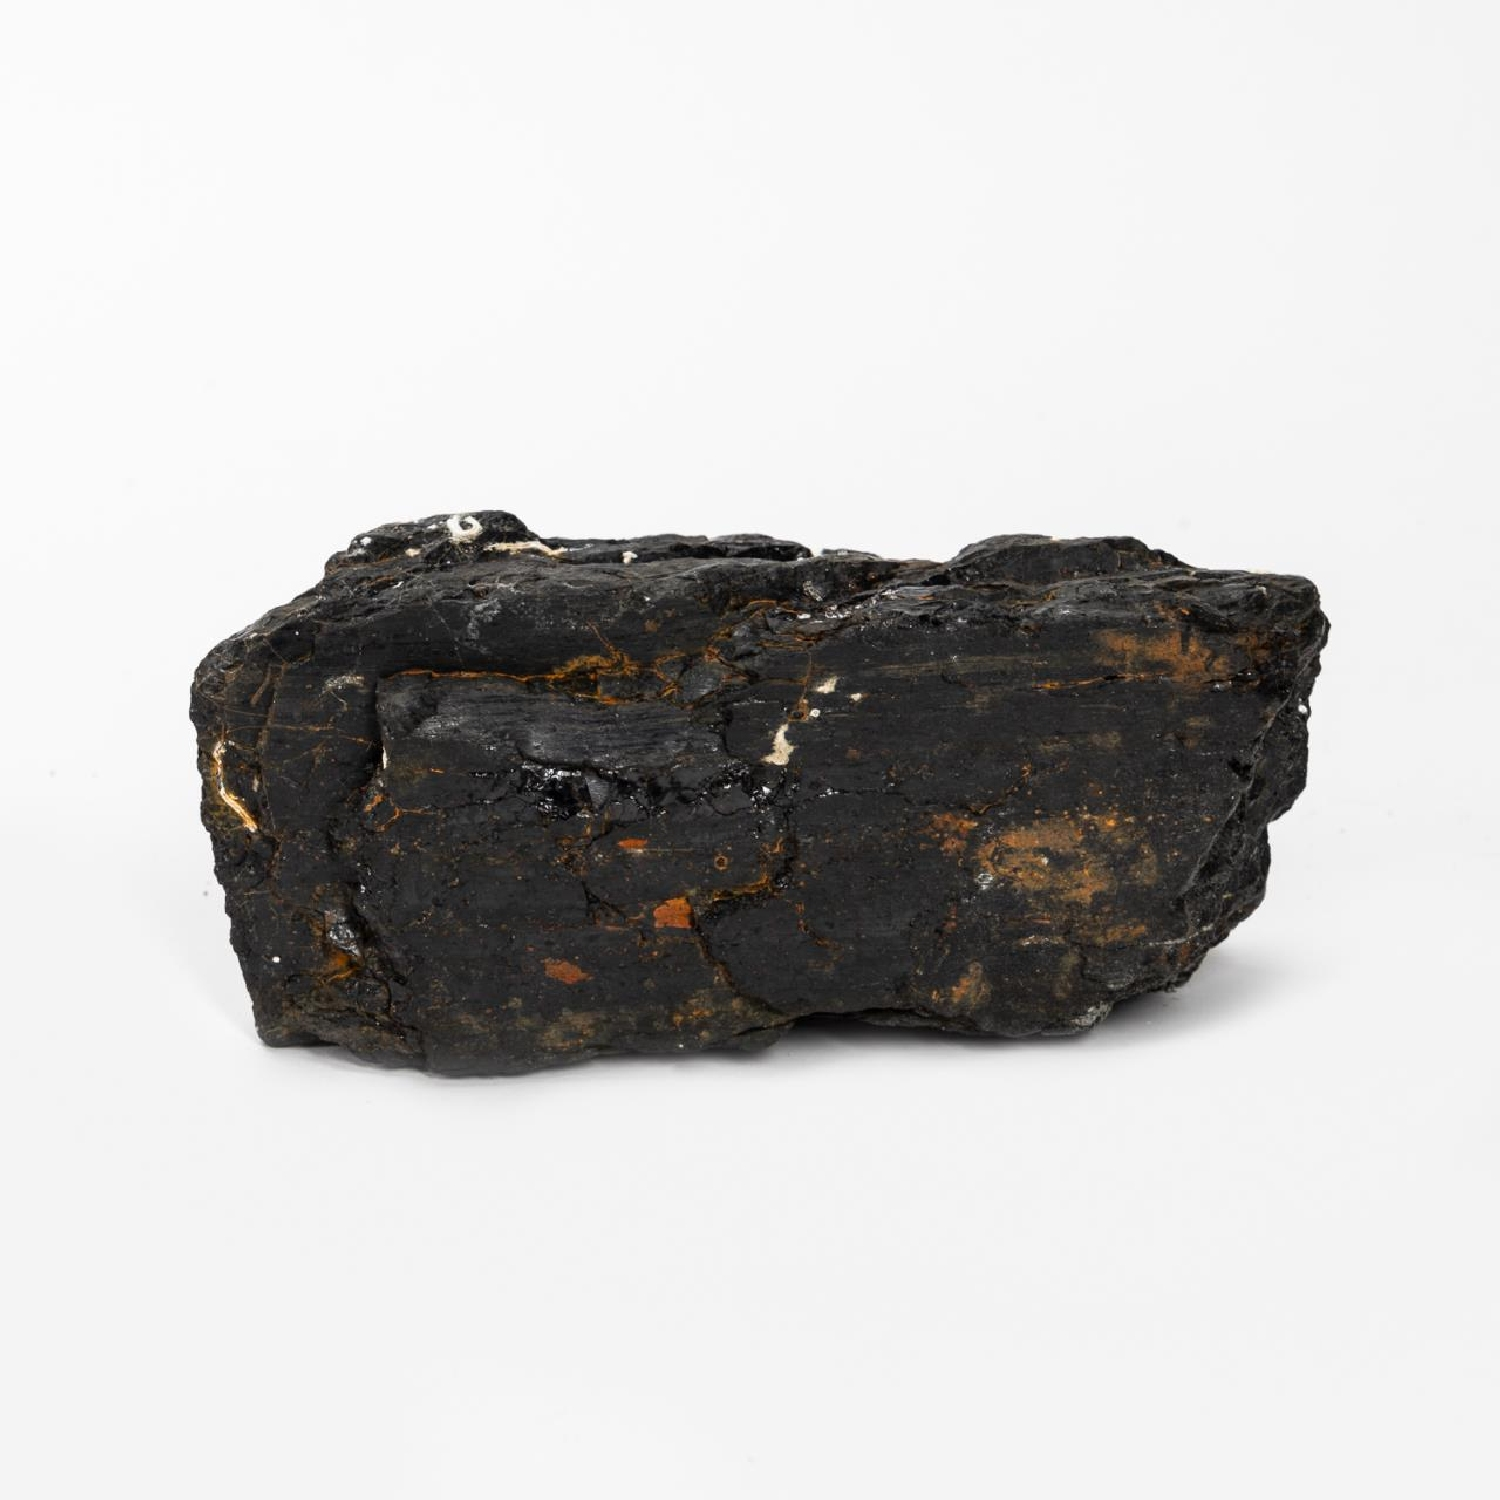 RMS CARPATHIA, SALVAGED SINGLE PIECE OF COAL - Image 5 of 5